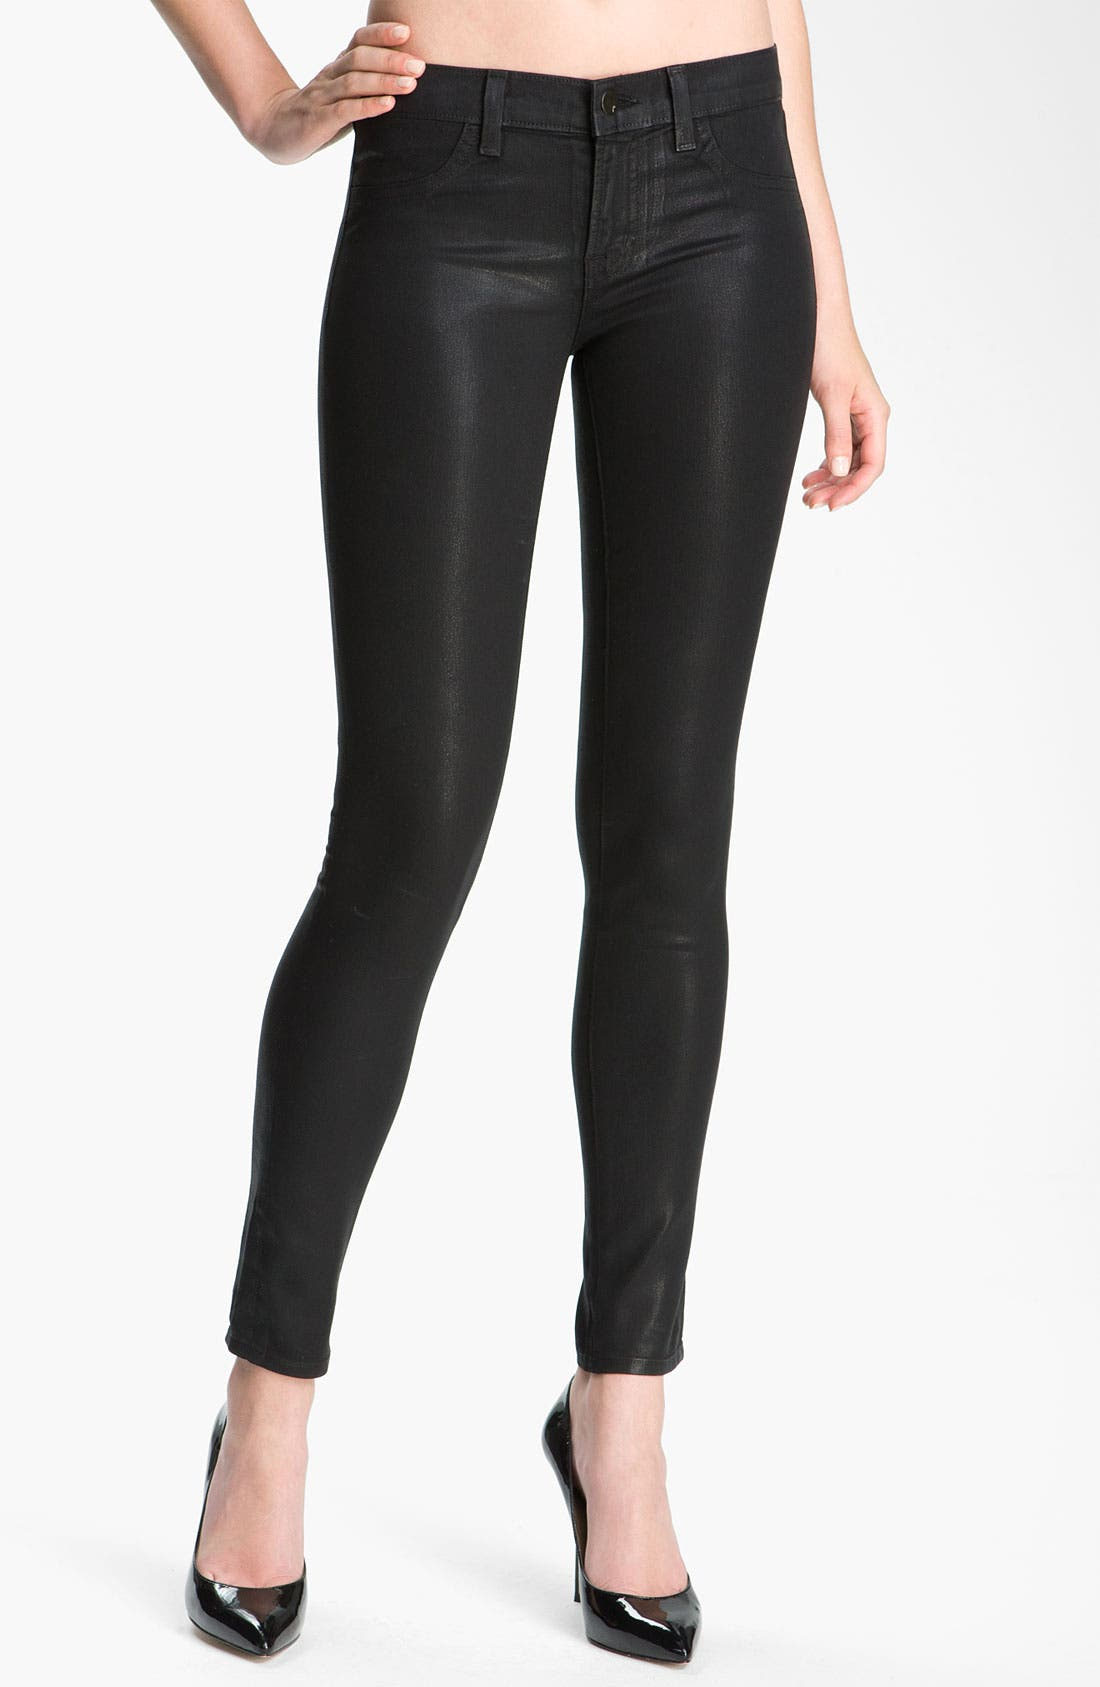 Main Image - J Brand 'The Legging' Coated Stretch Jeans (Stealth)